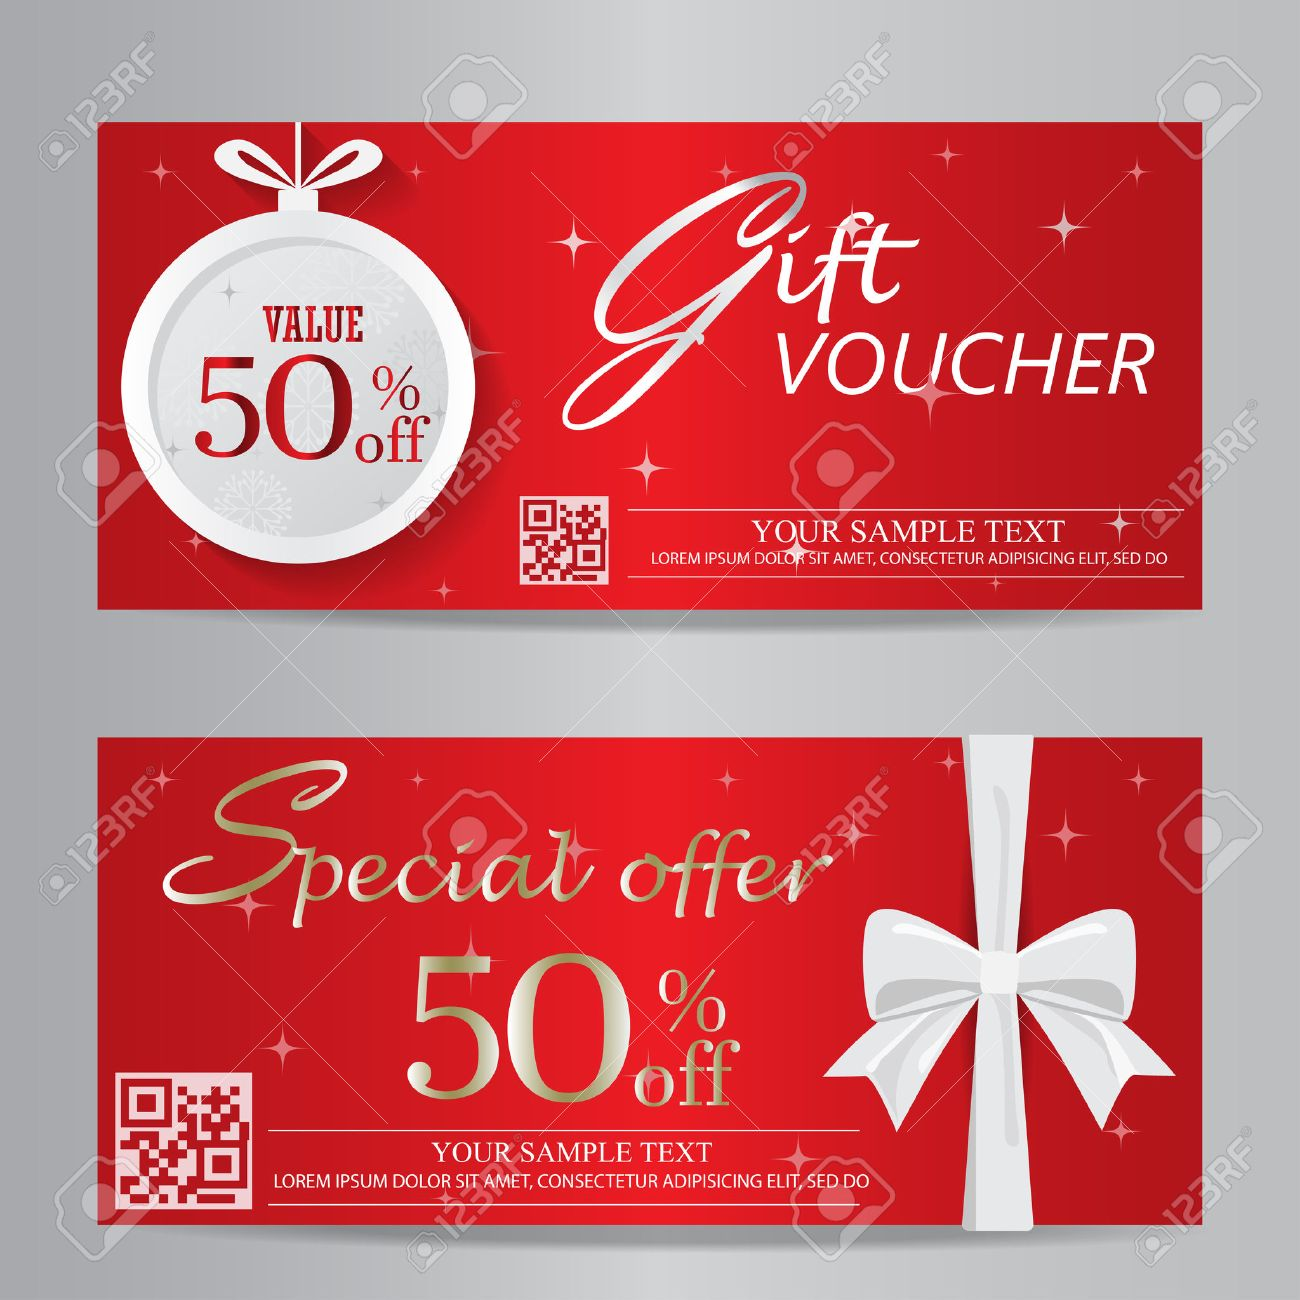 red christmas and new year gift voucher certificate coupon template. can be use for business shopping card, customer sale and promotion, layout, banner, web design. vector illustration - 45947197